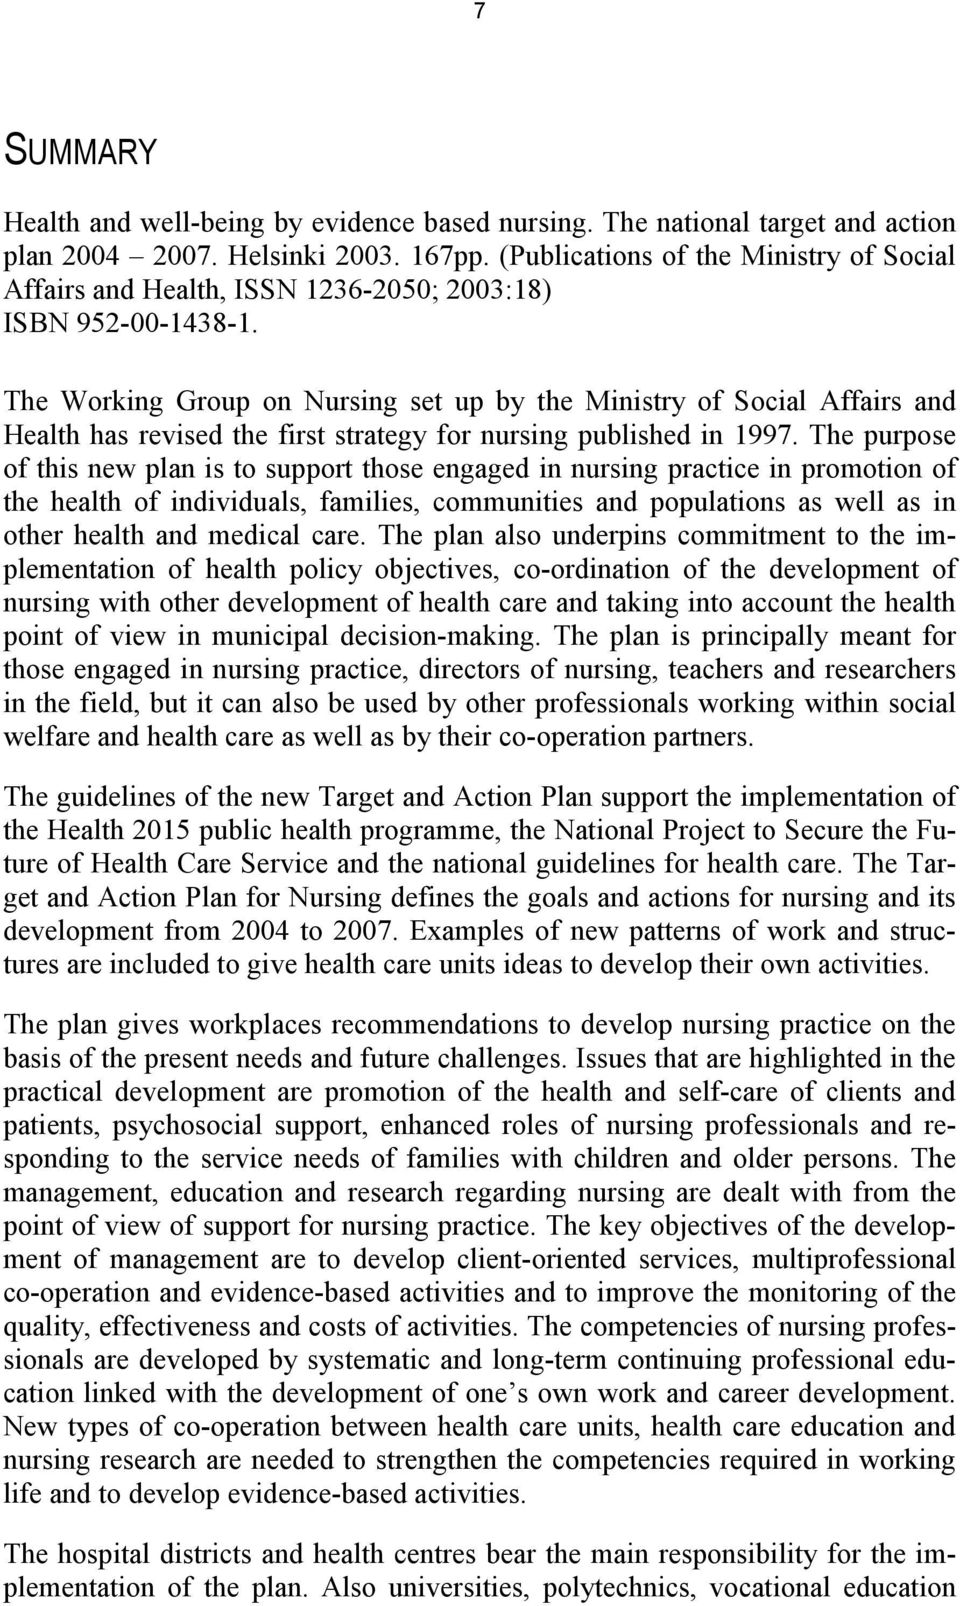 The Working Group on Nursing set up by the Ministry of Social Affairs and Health has revised the first strategy for nursing published in 1997.